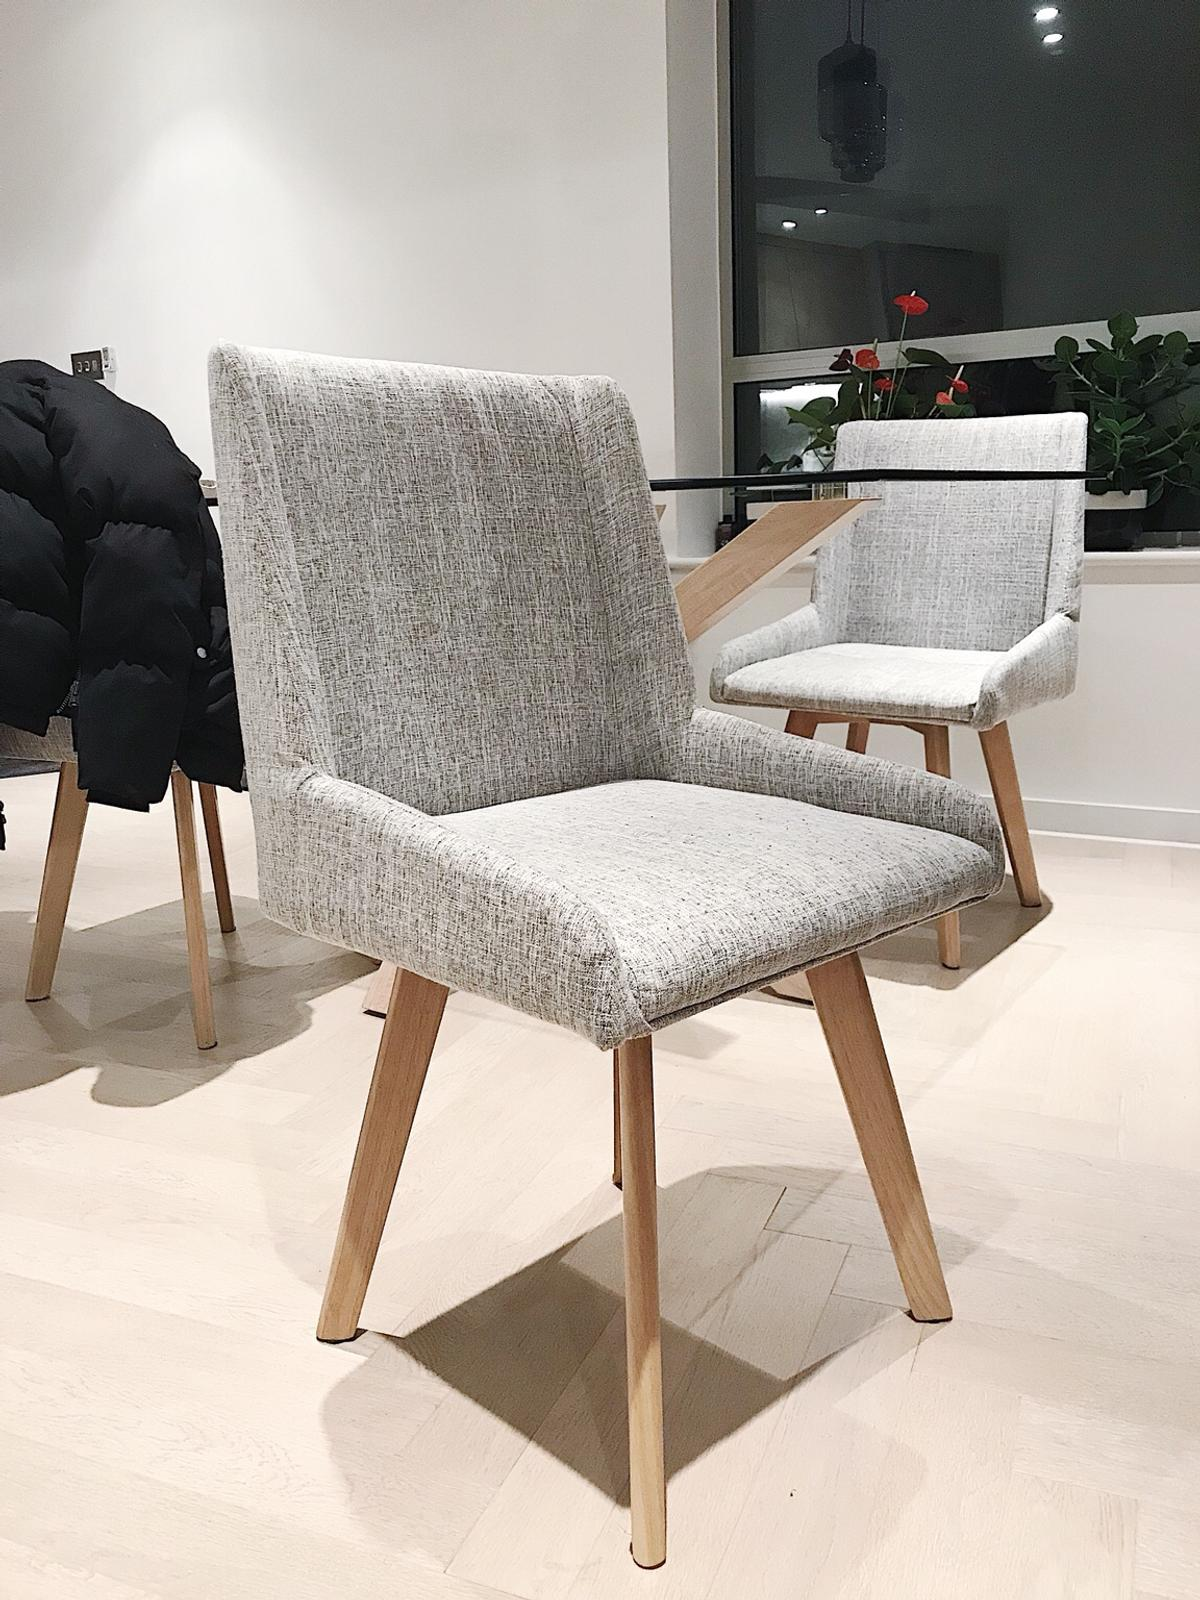 info for c94c4 611ed Wayfair Upholstered Dining Chairs in Grey in NW5 Camden for ...